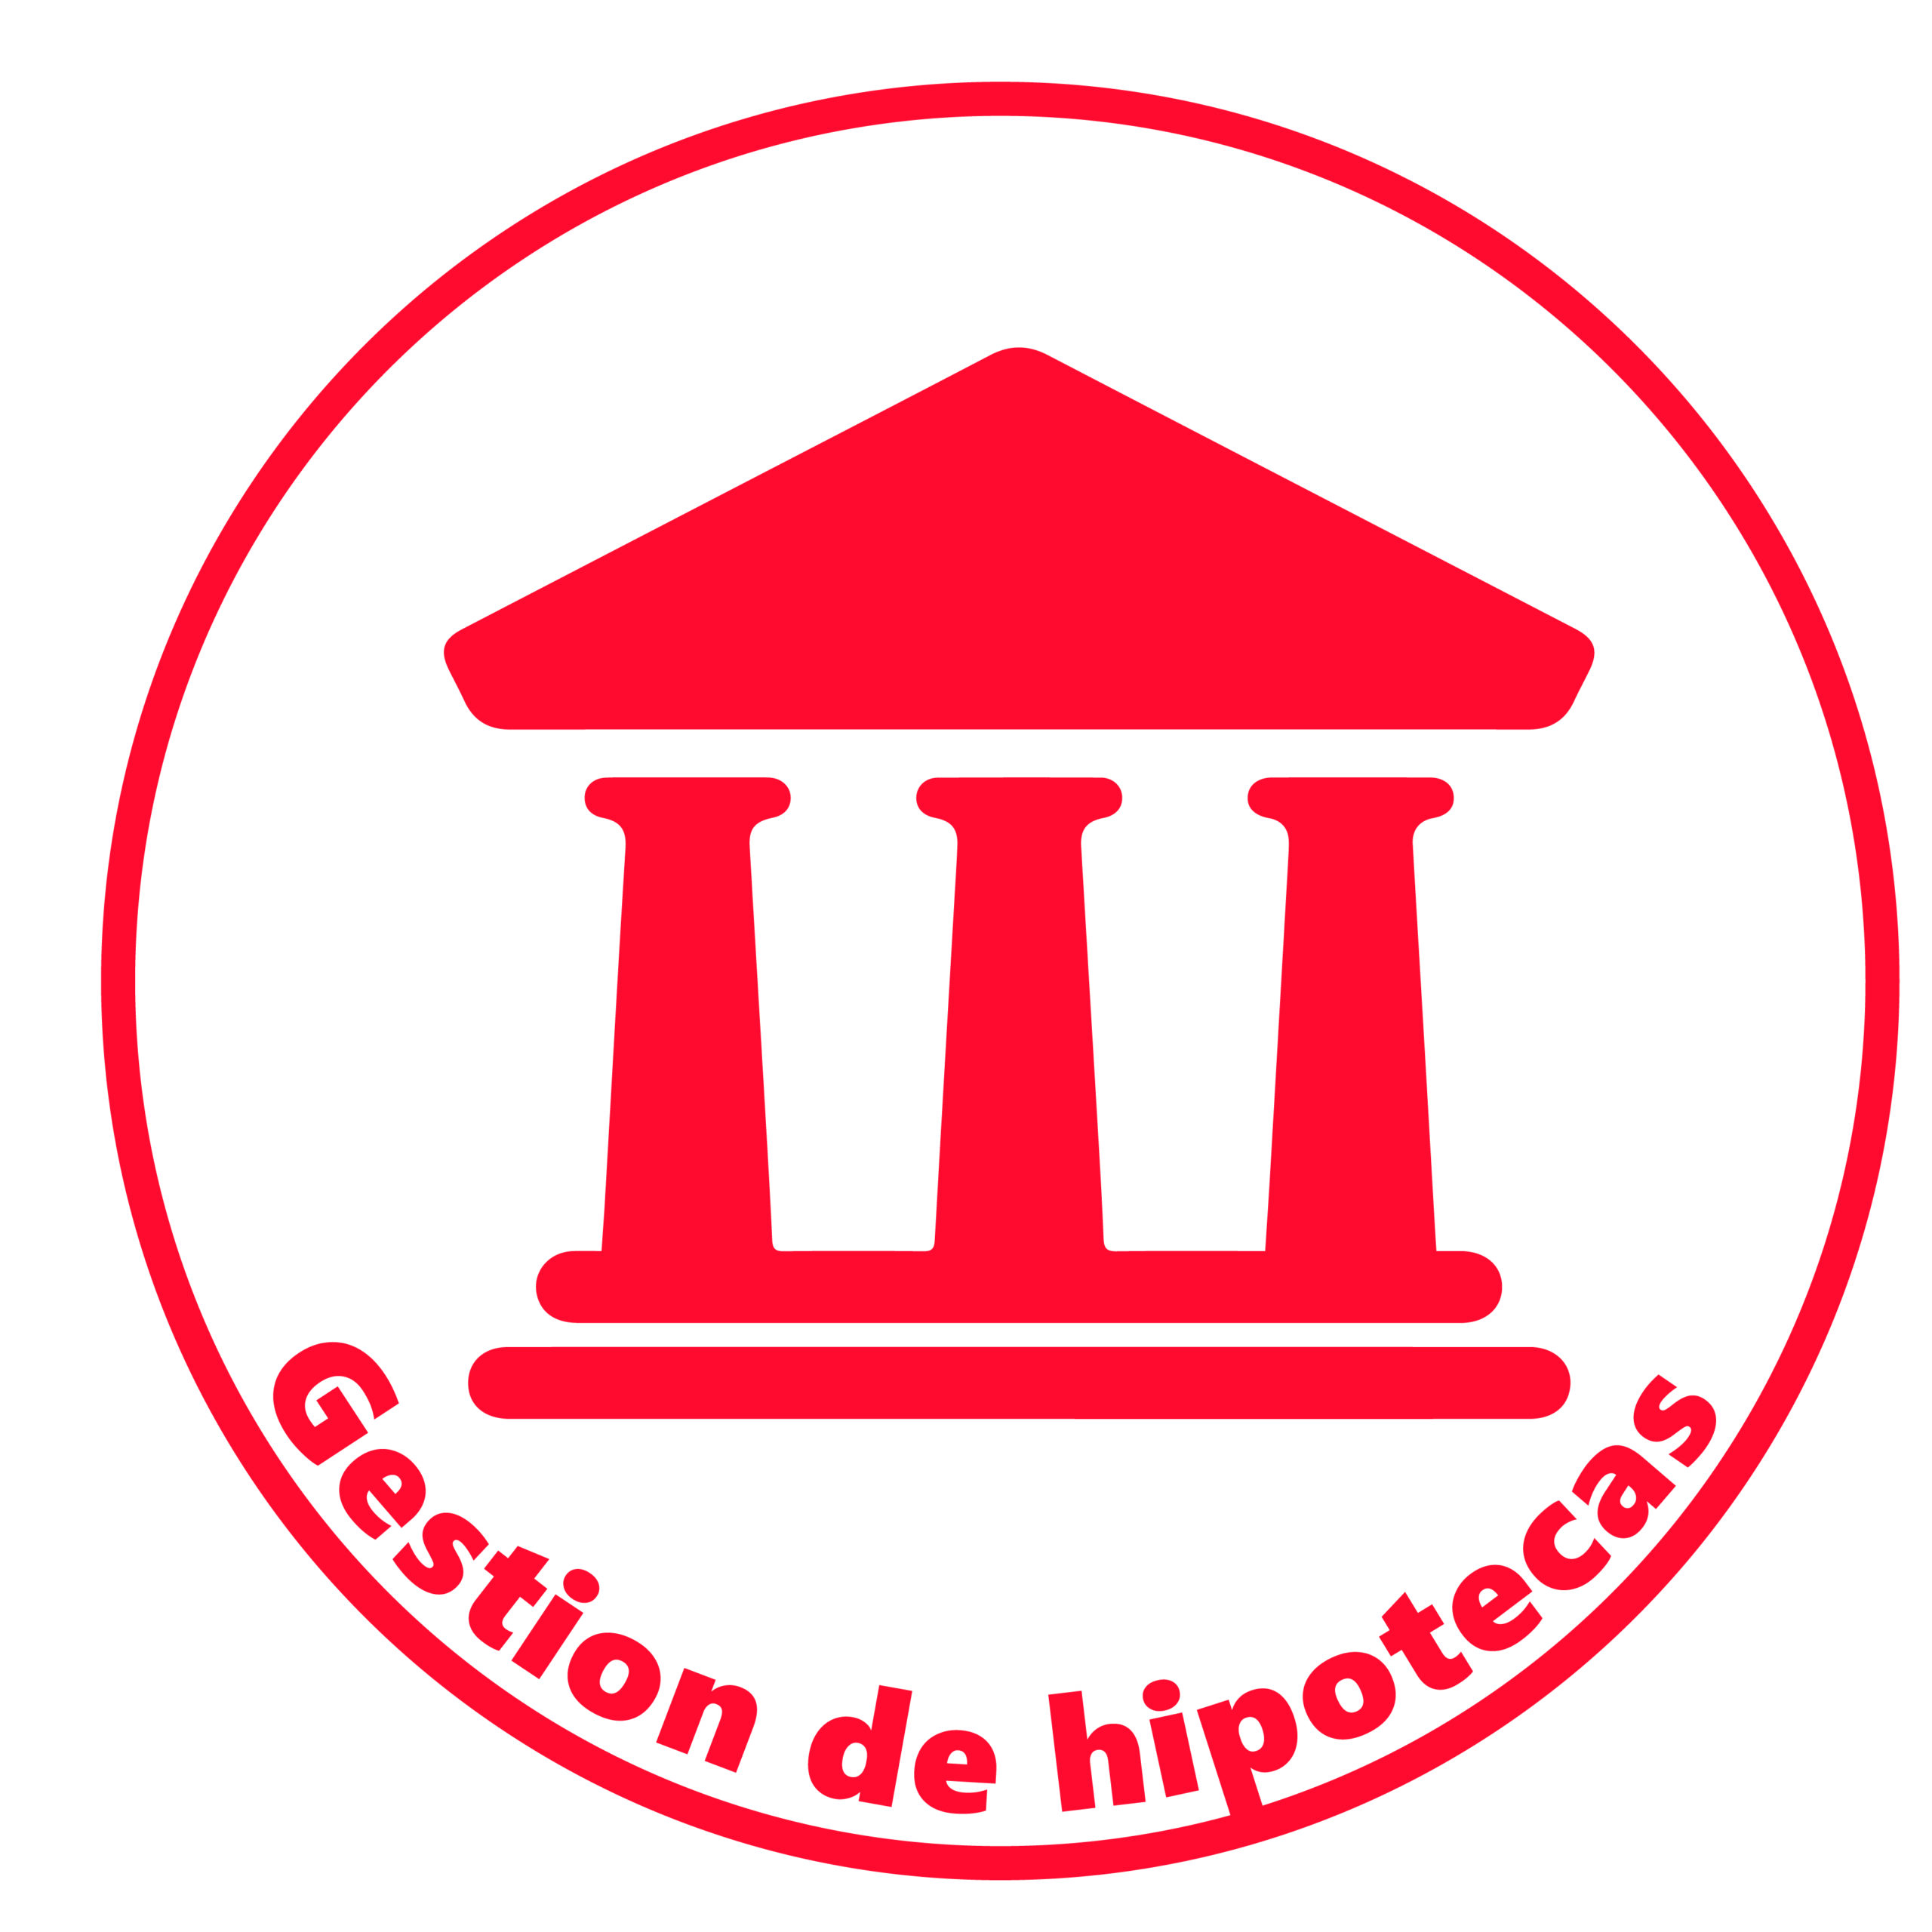 Gestion hipotecaria